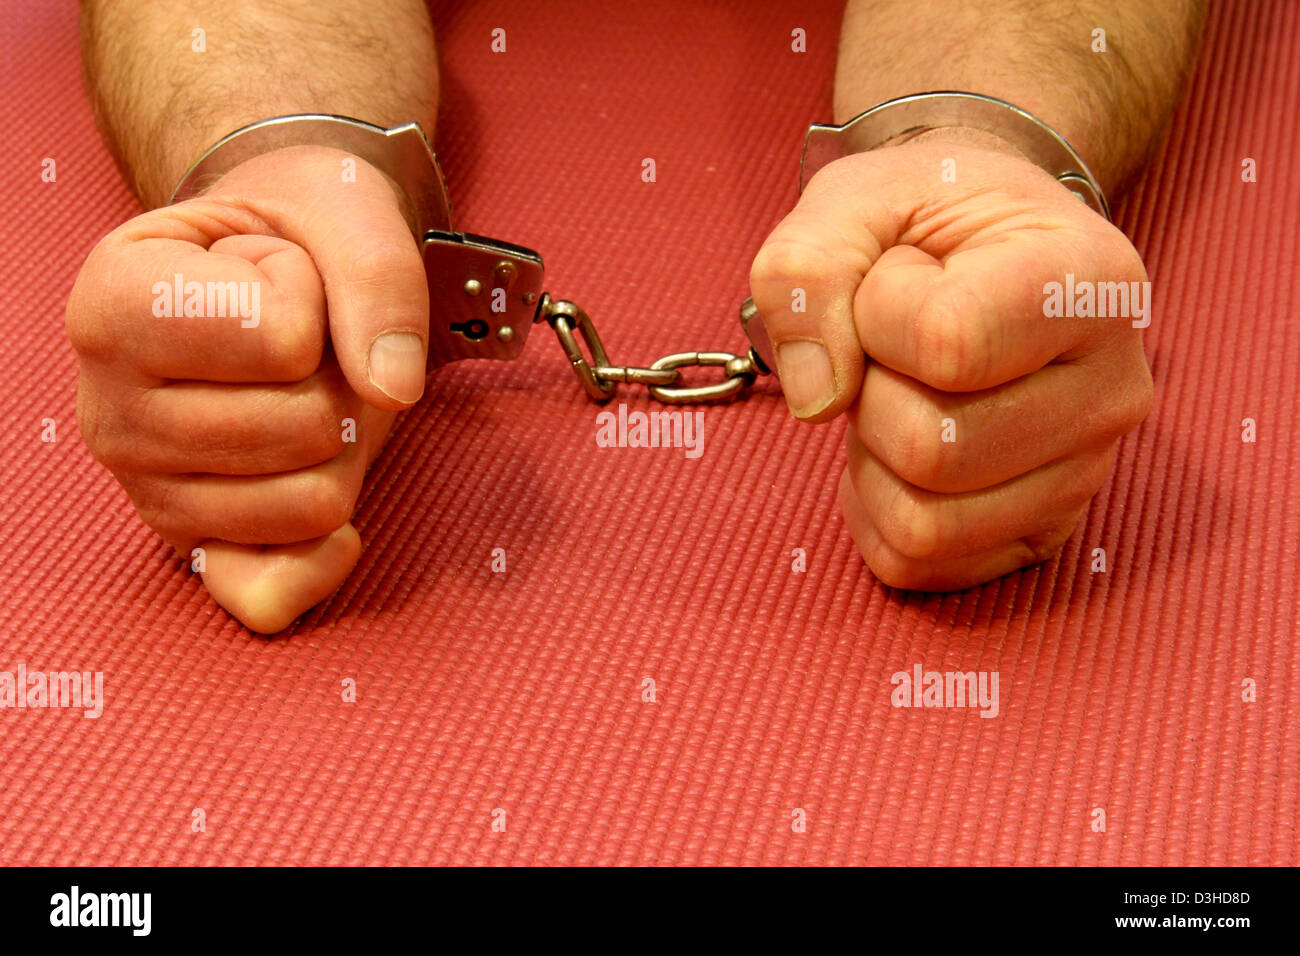 handcuffs on a prisoners wrist over a rubber mat background - Stock Image